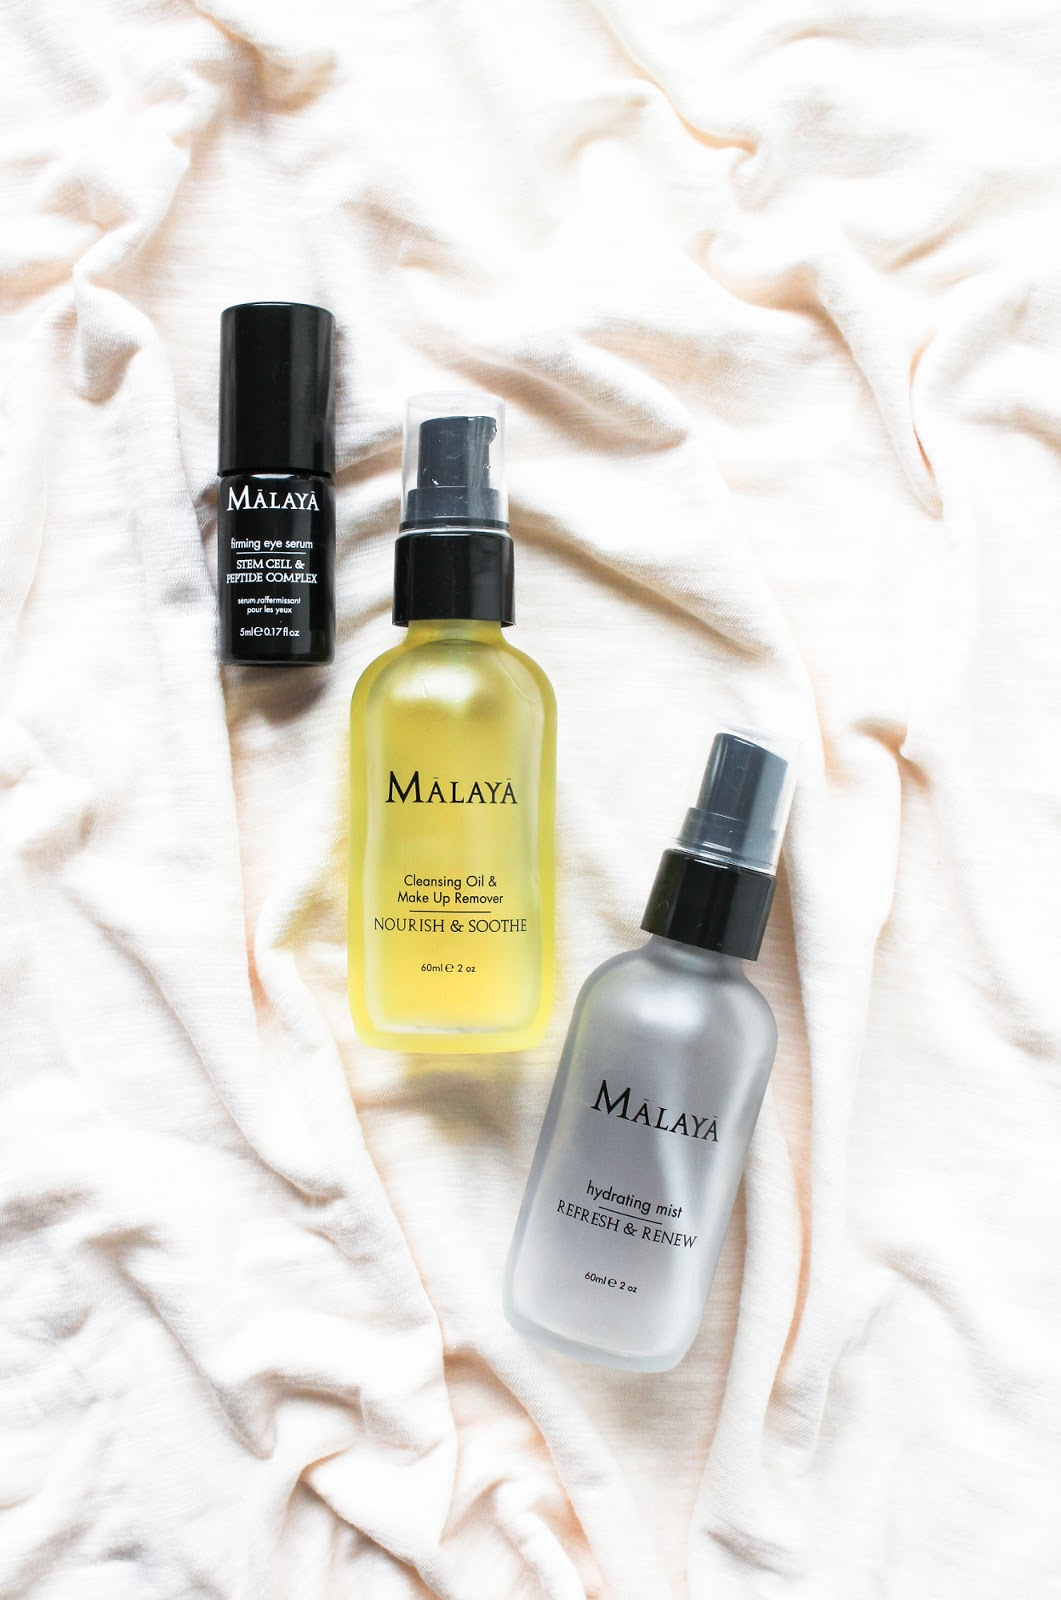 Malaya Organics Hydrating Mist Refresh and renew, Cleansing oil and makeup remover Nourish and Soothe, Firming Eye Serum Stem Cell and Peptide Complex